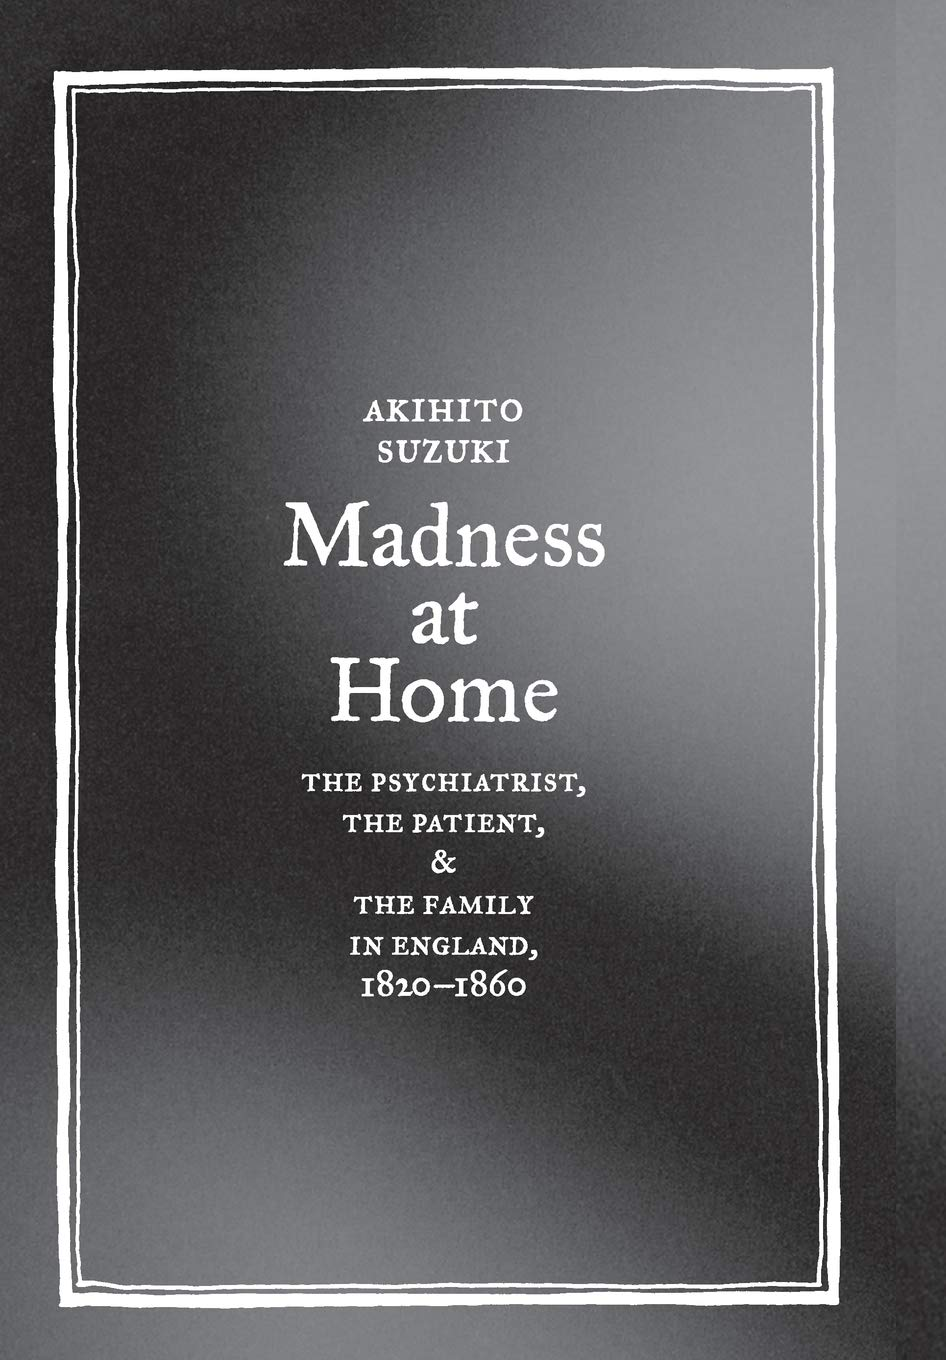 Download Madness at Home: The Psychiatrist, the Patient, and the Family in England, 1820-1860 (Medicine and Society) ebook